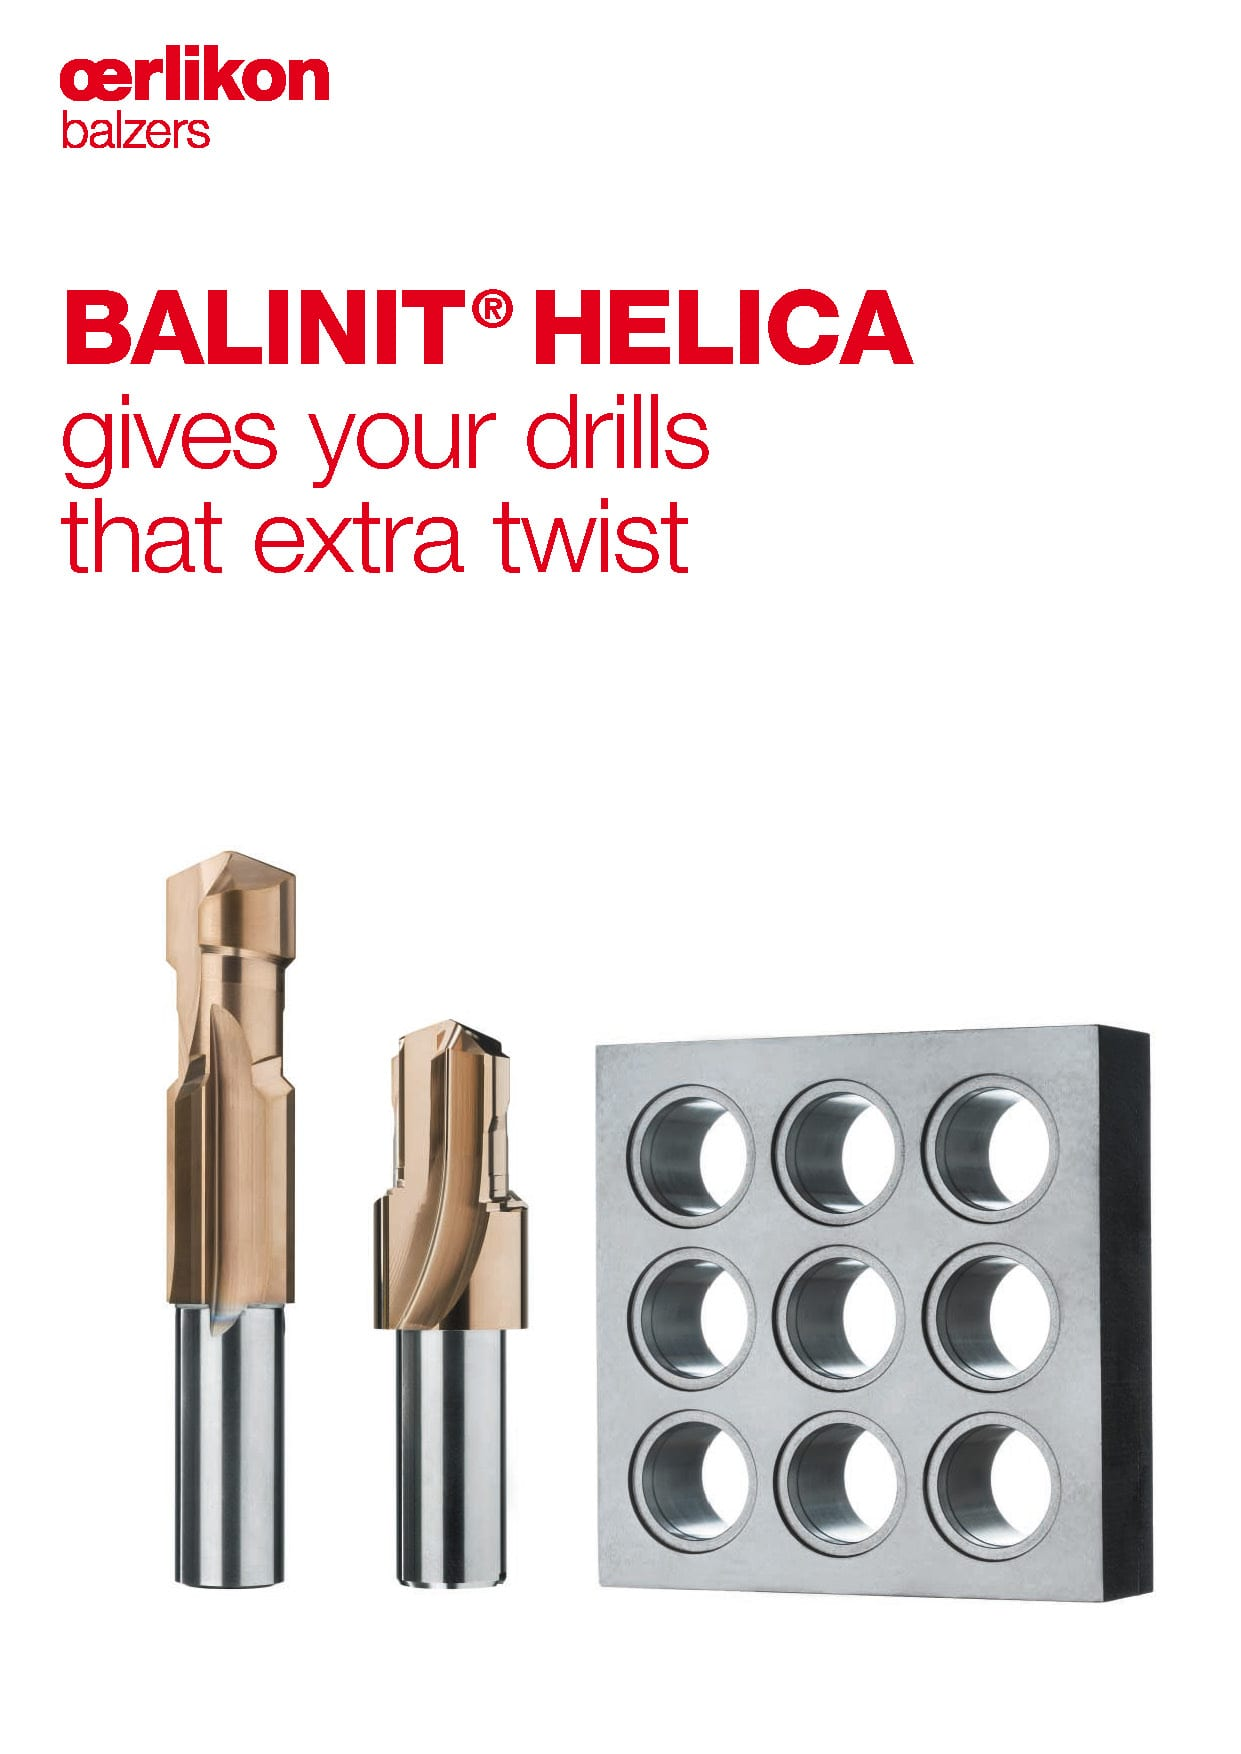 BALINIT® HELICA gives your drills that extra twist